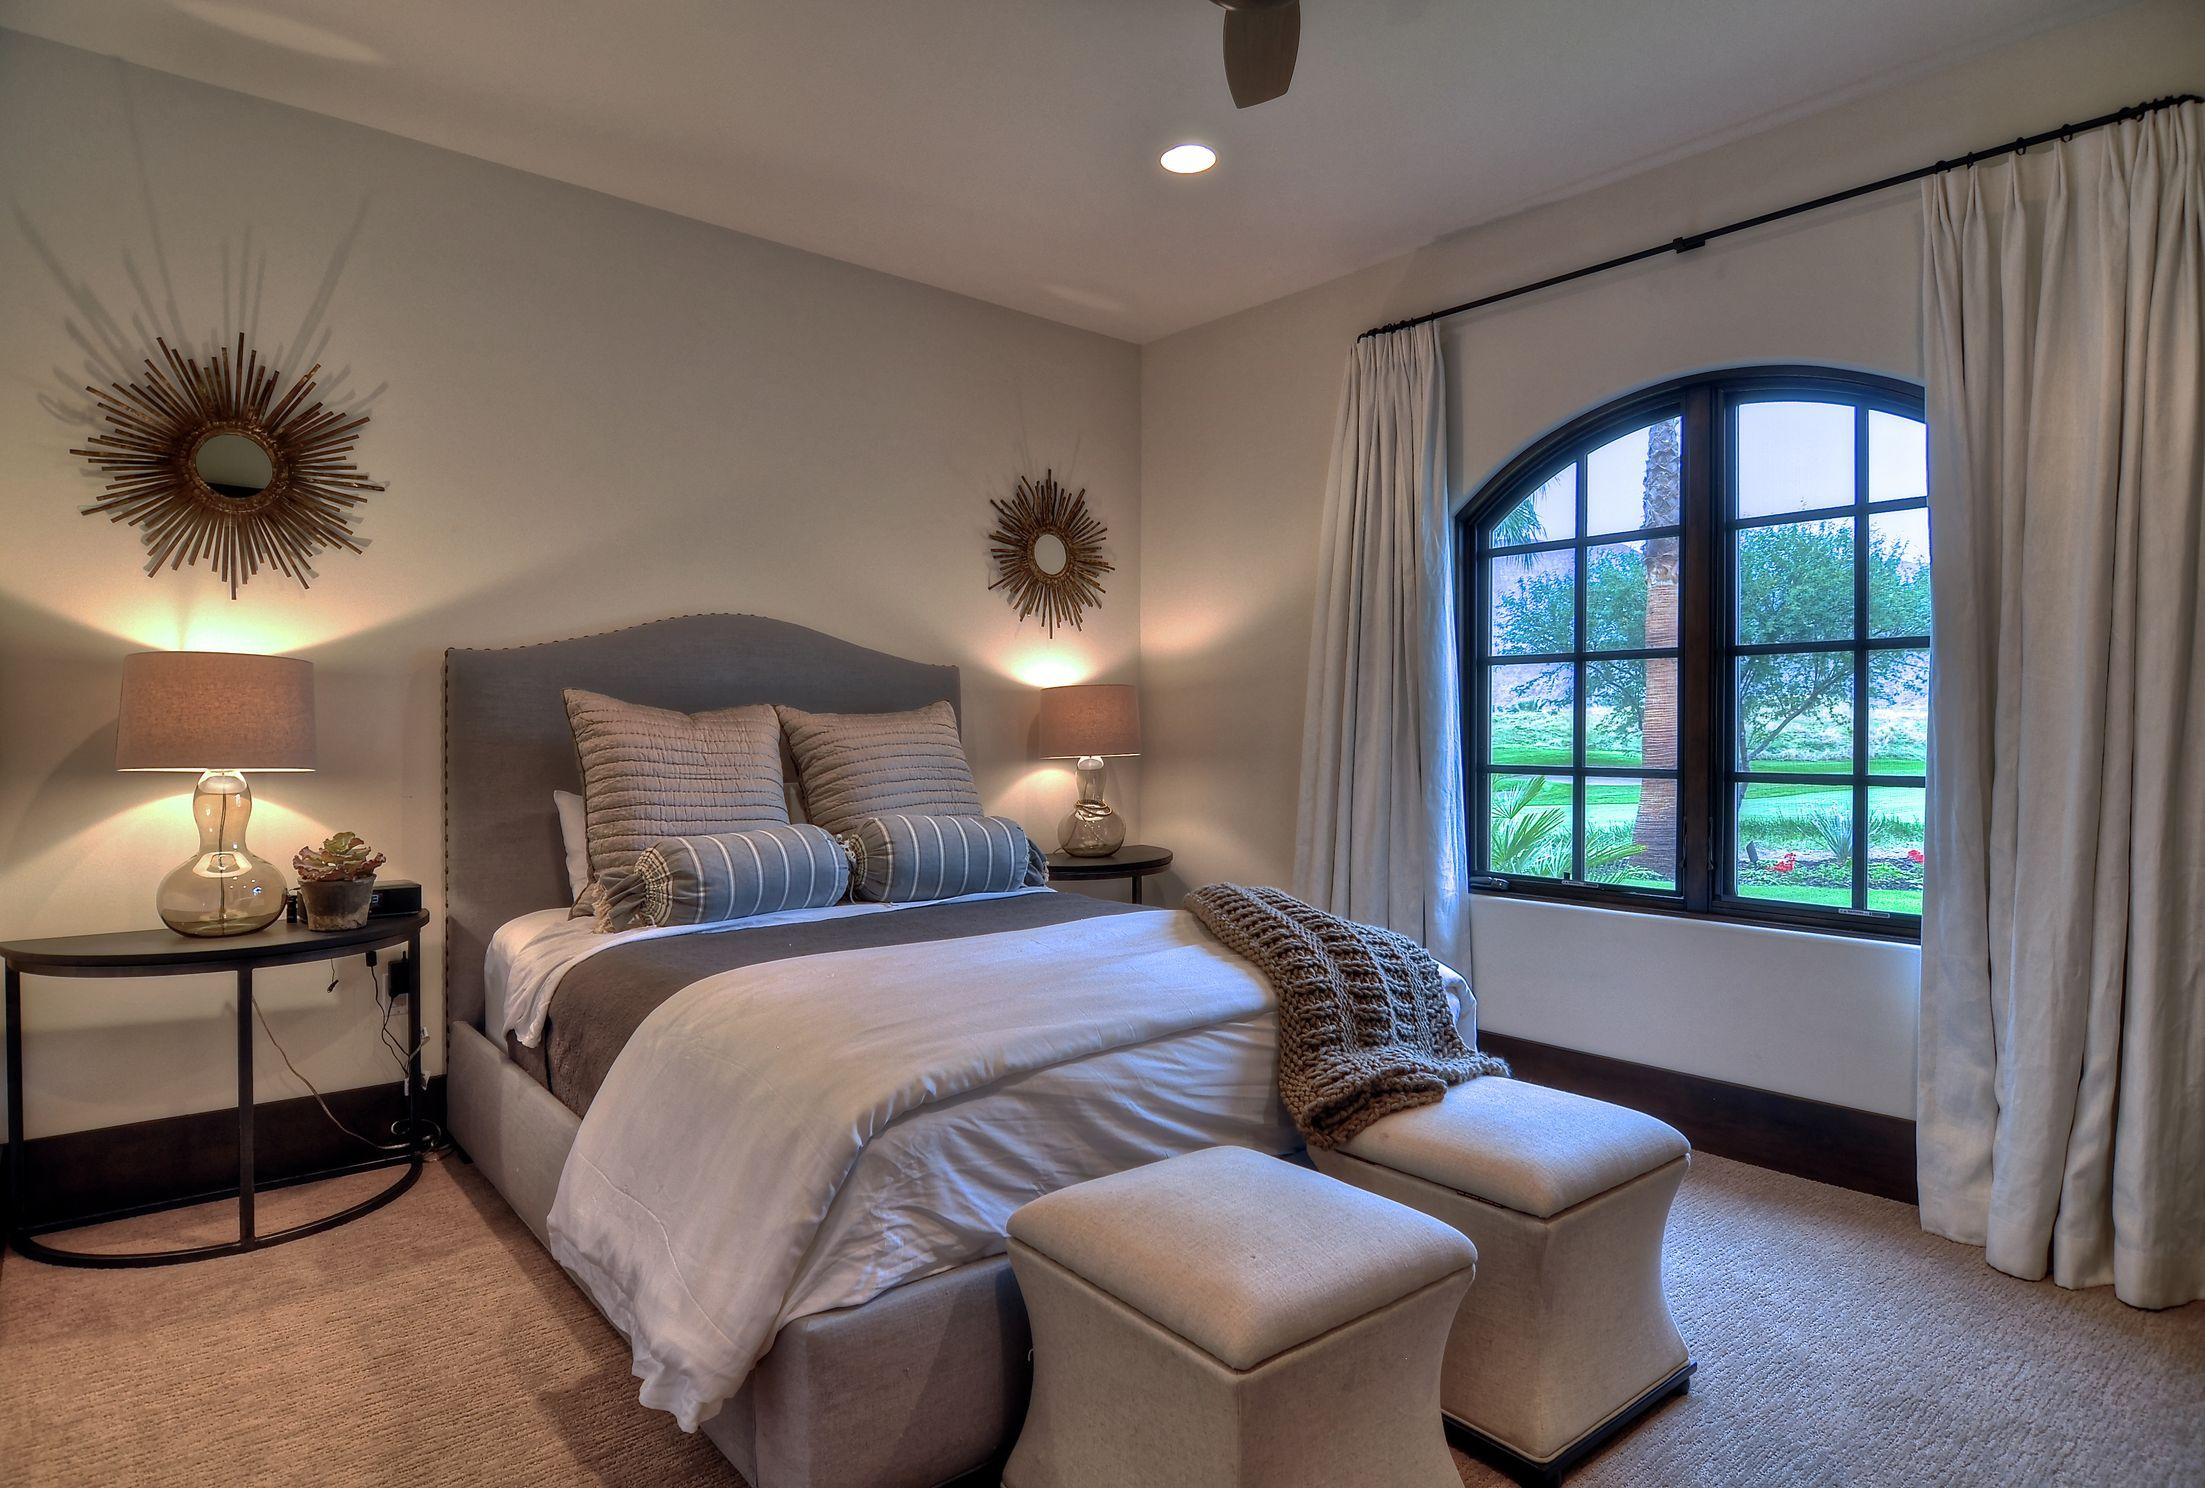 Guest Room - Contemporary - Bedroom - Images by Kathleen DiPaolo Designs | Wayfair